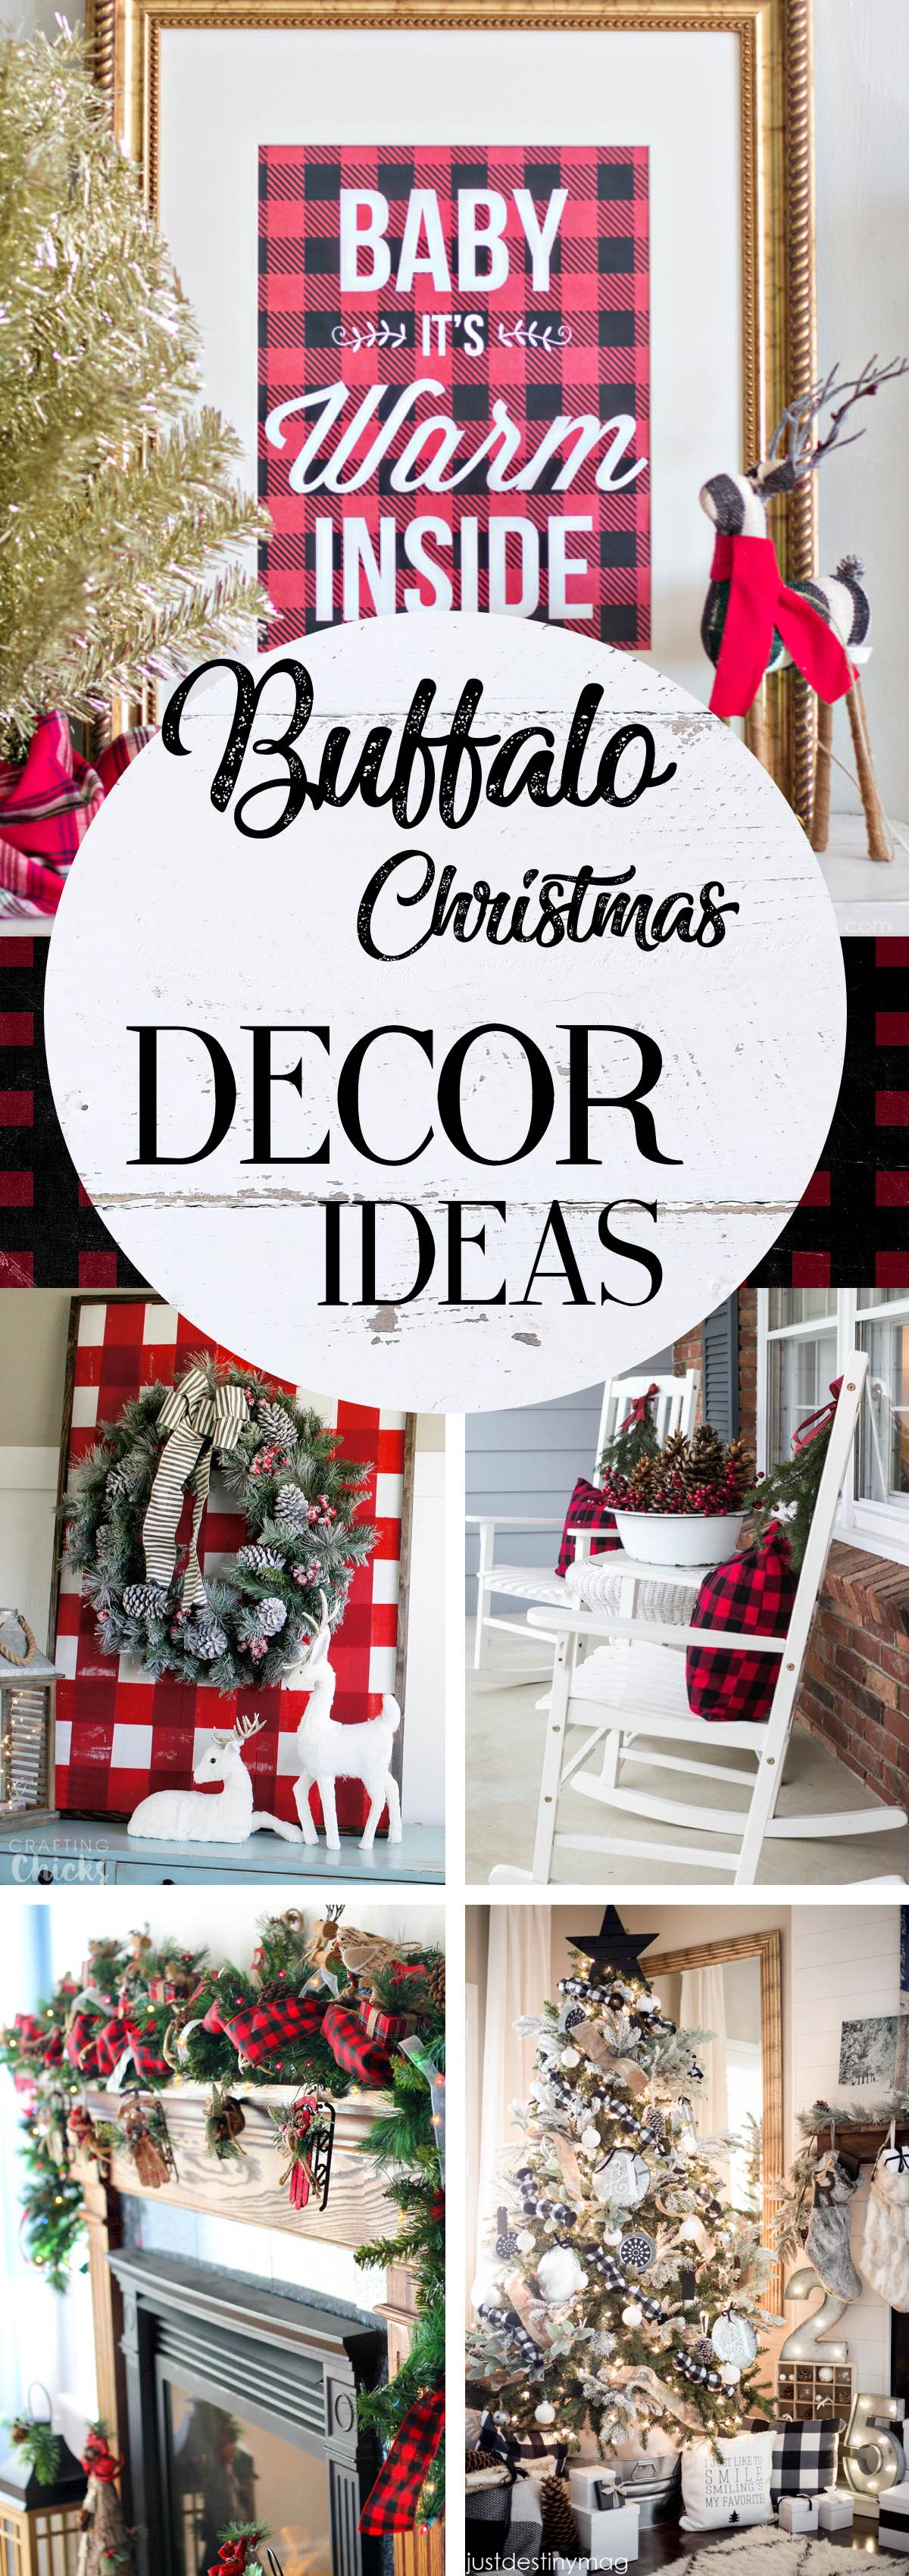 Stunning Buffalo Christmas Decor Ideas